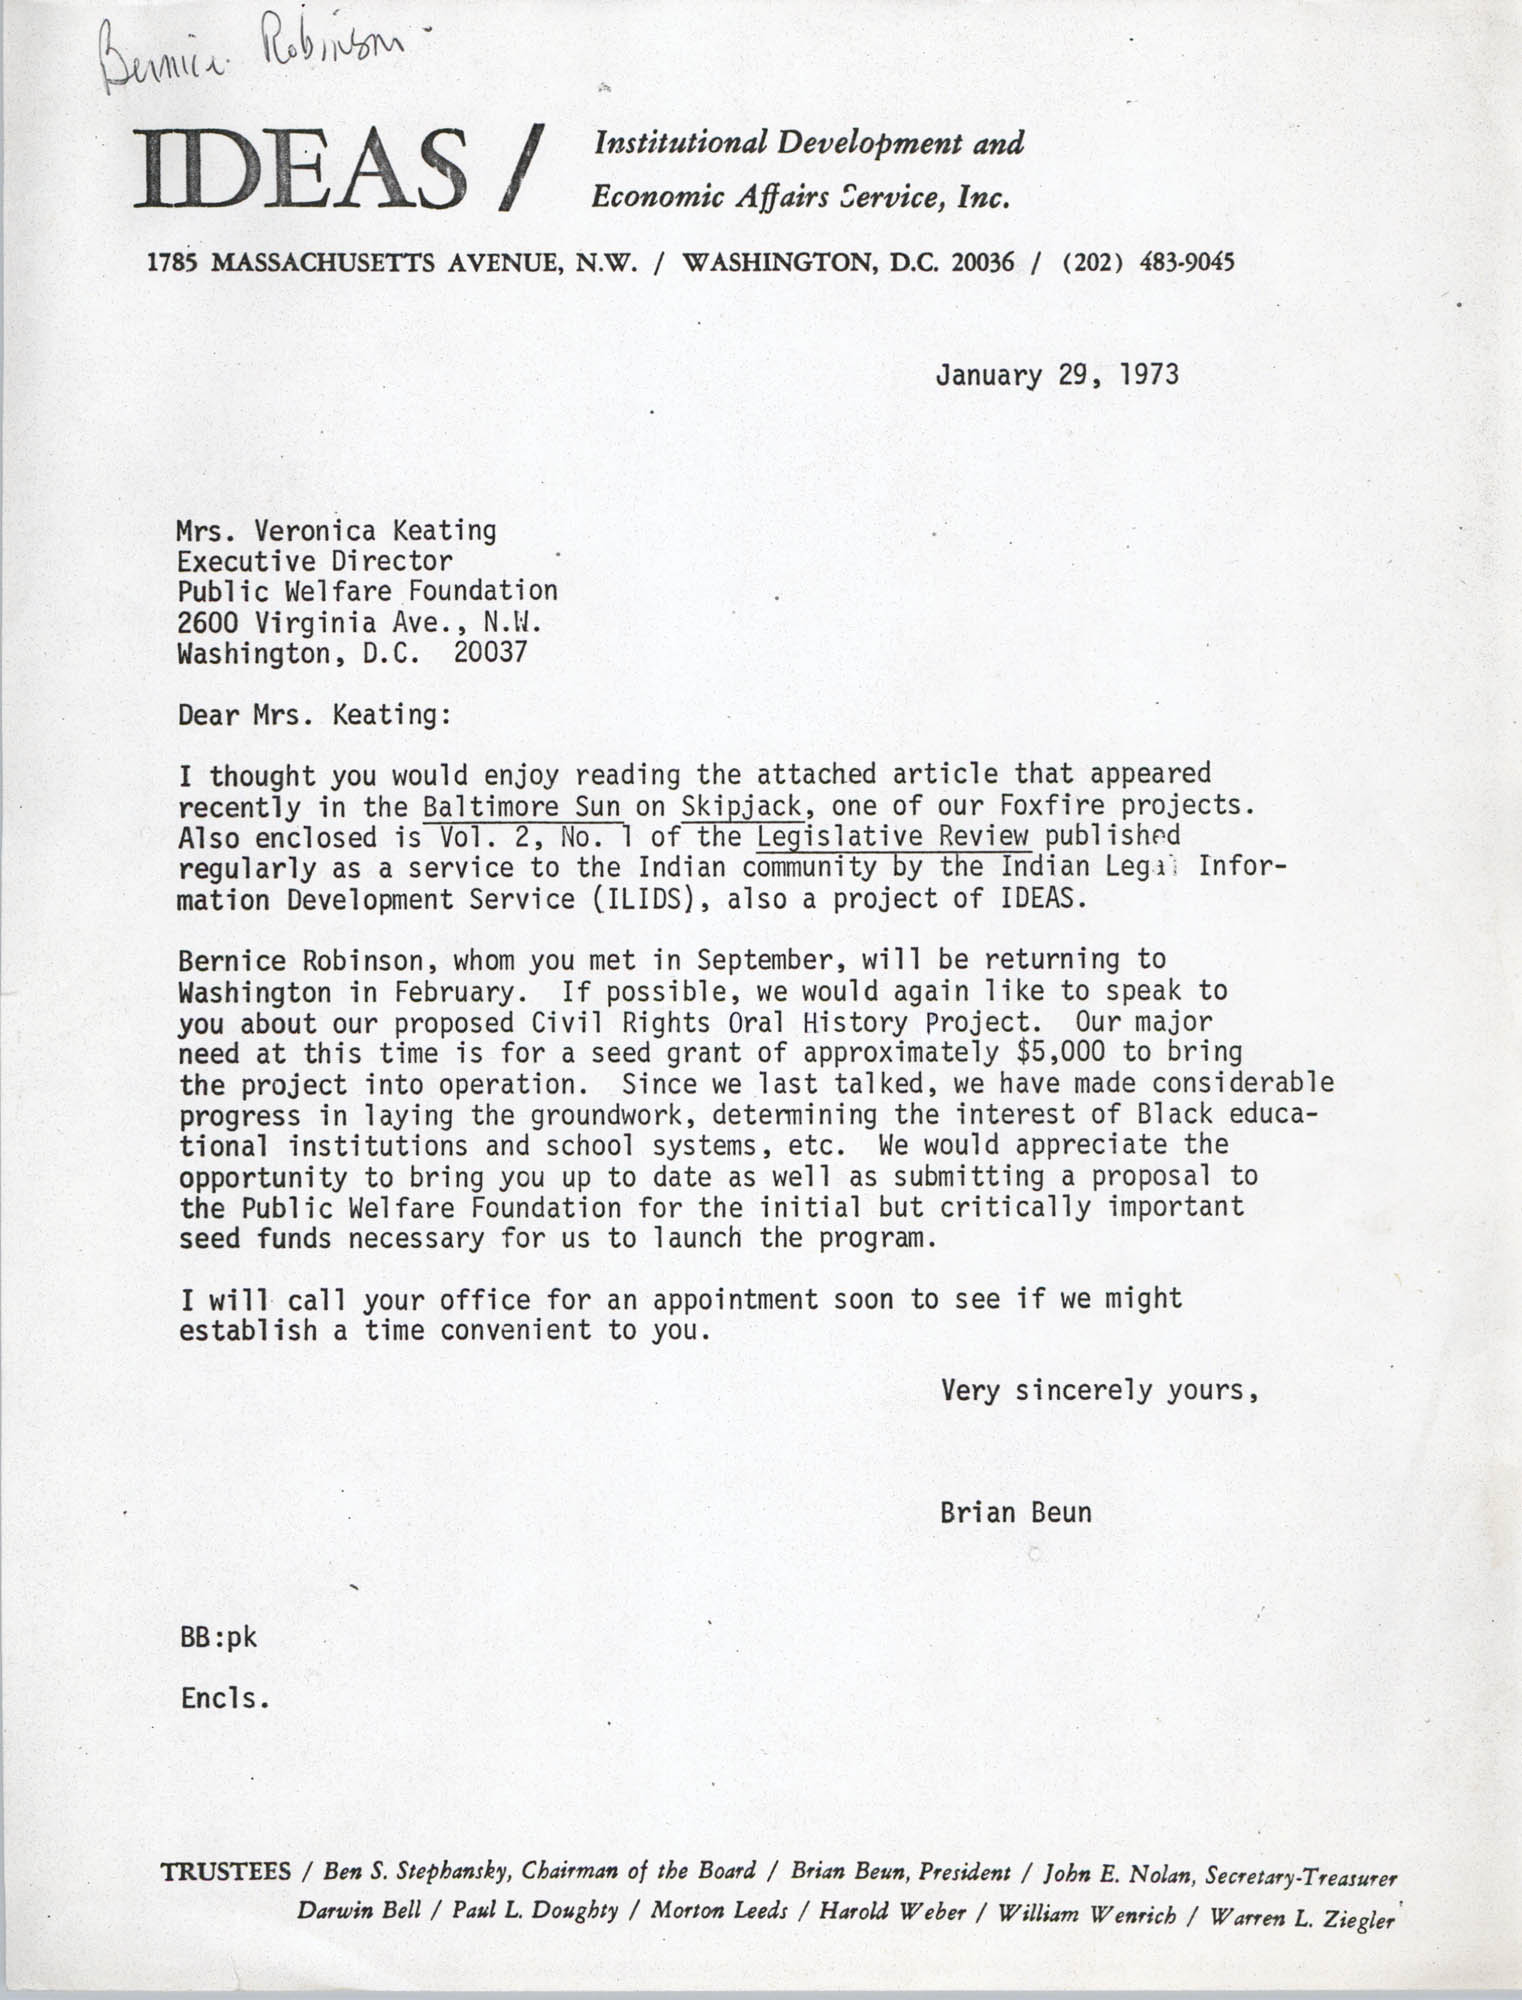 Letter from Brian Beun to Veronica Keating, January 29, 1973